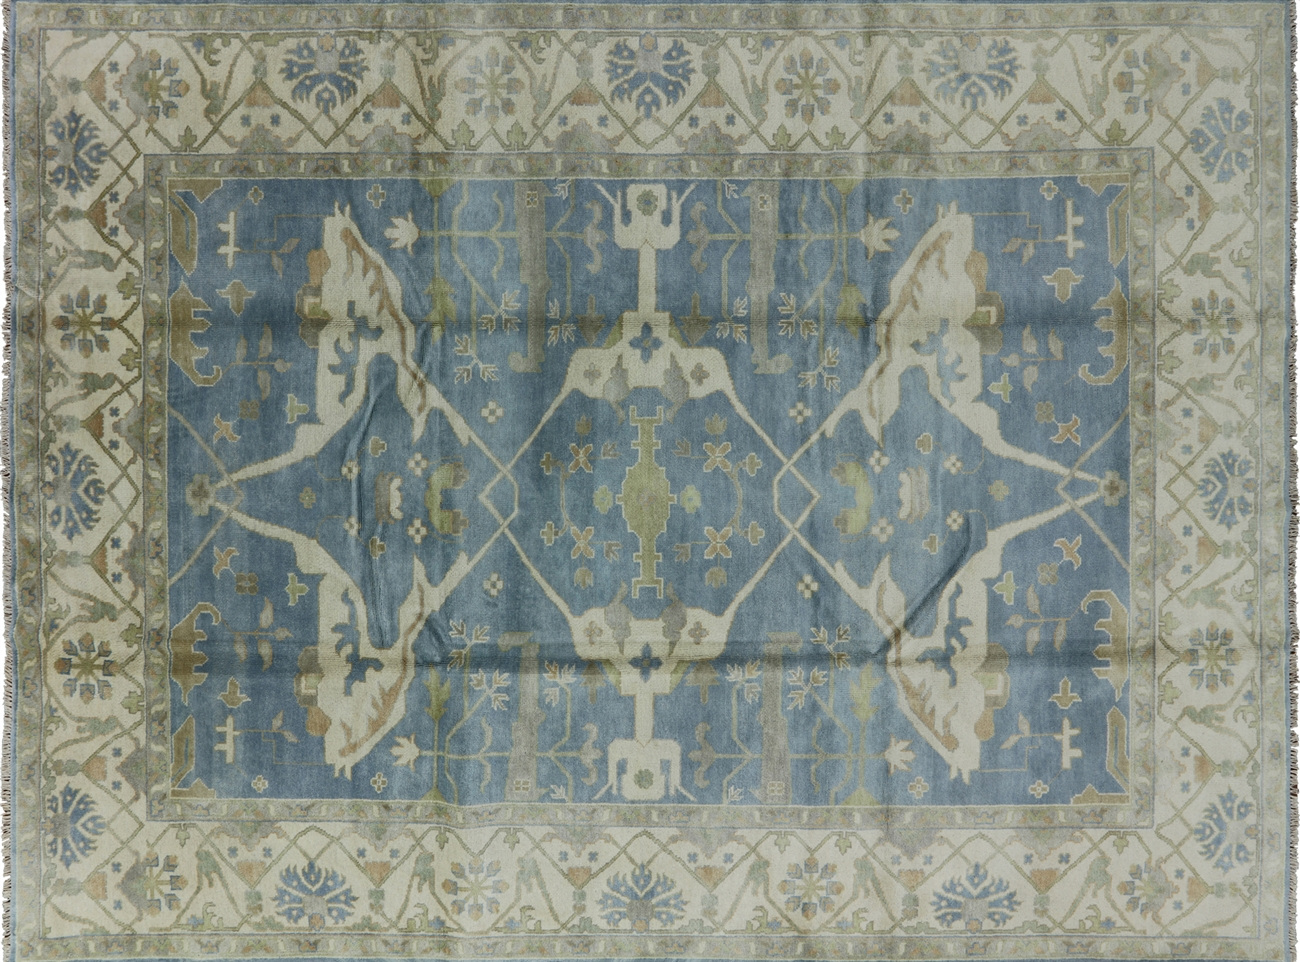 Oriental Oushak Hand Knotted Blue/Ivory Border 9x12 Fish Design Wool Rug  H8971